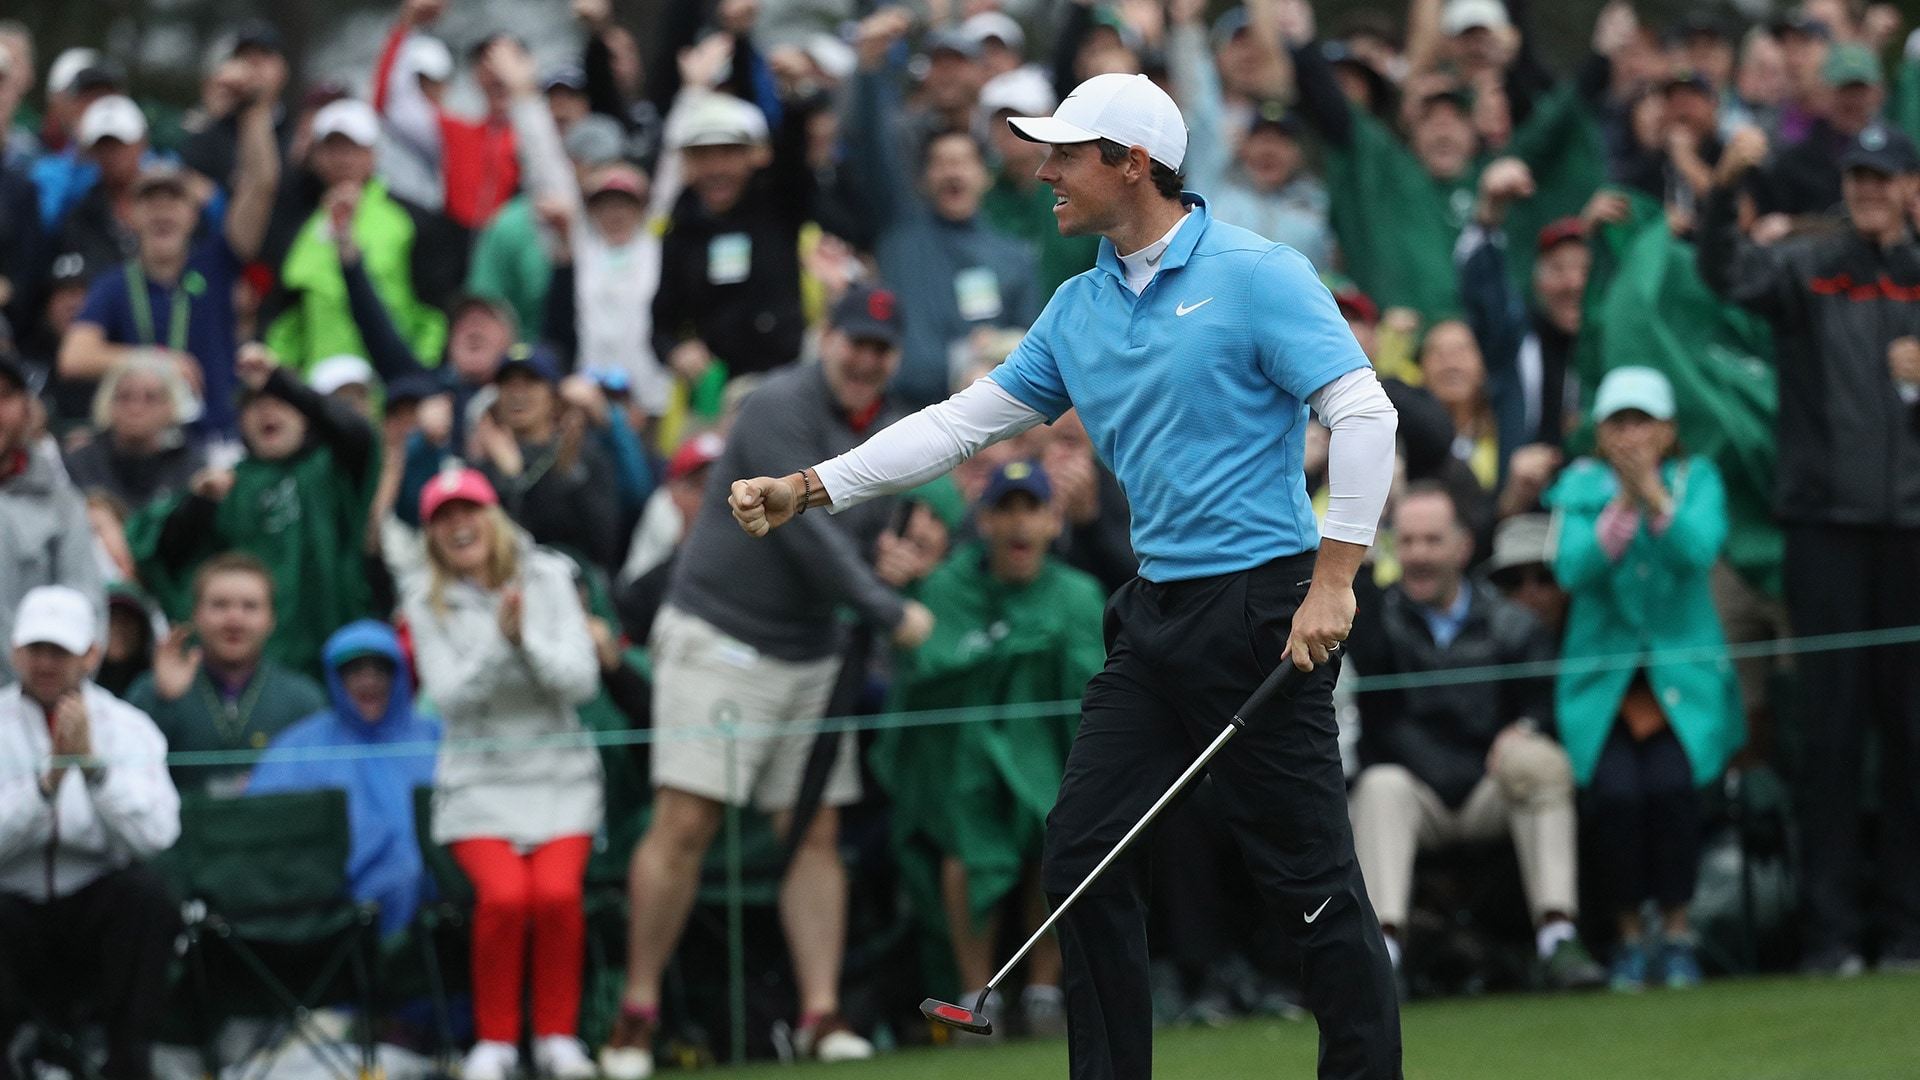 Rory McIlroy on No. 18 on Saturday at the 2018 Masters.